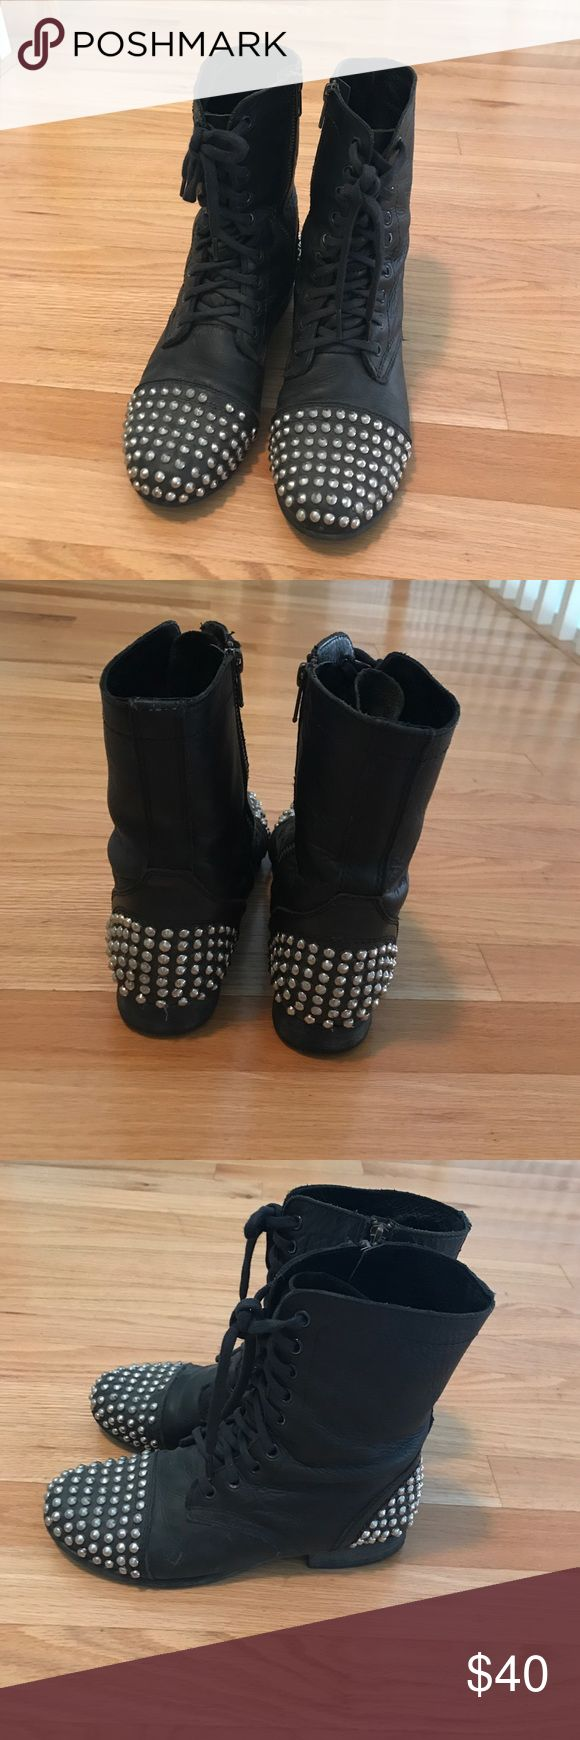 Steve Madden studded combat boots Gently used Steve Madden studded combat boots. Right boot is missing one stud, otherwise great condition. Size 8. Steve Madden Shoes Combat & Moto Boots